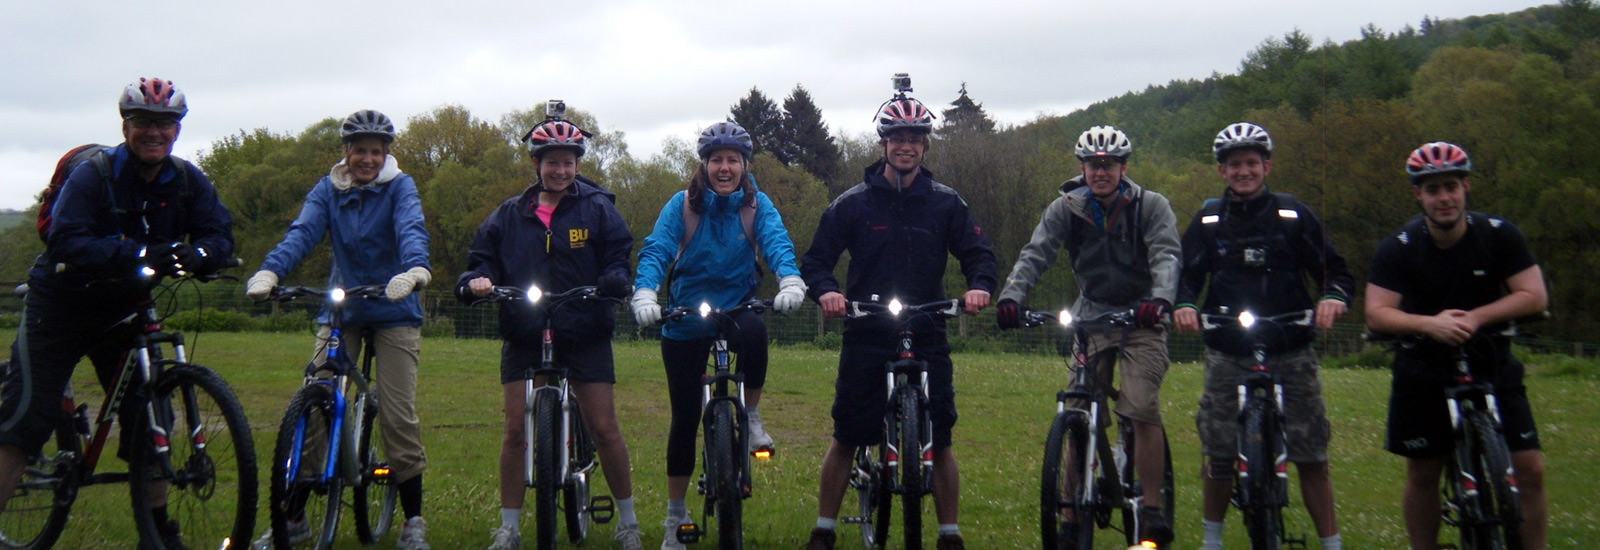 Cycling and Mountain Bike tours from the Raithwaite Estate